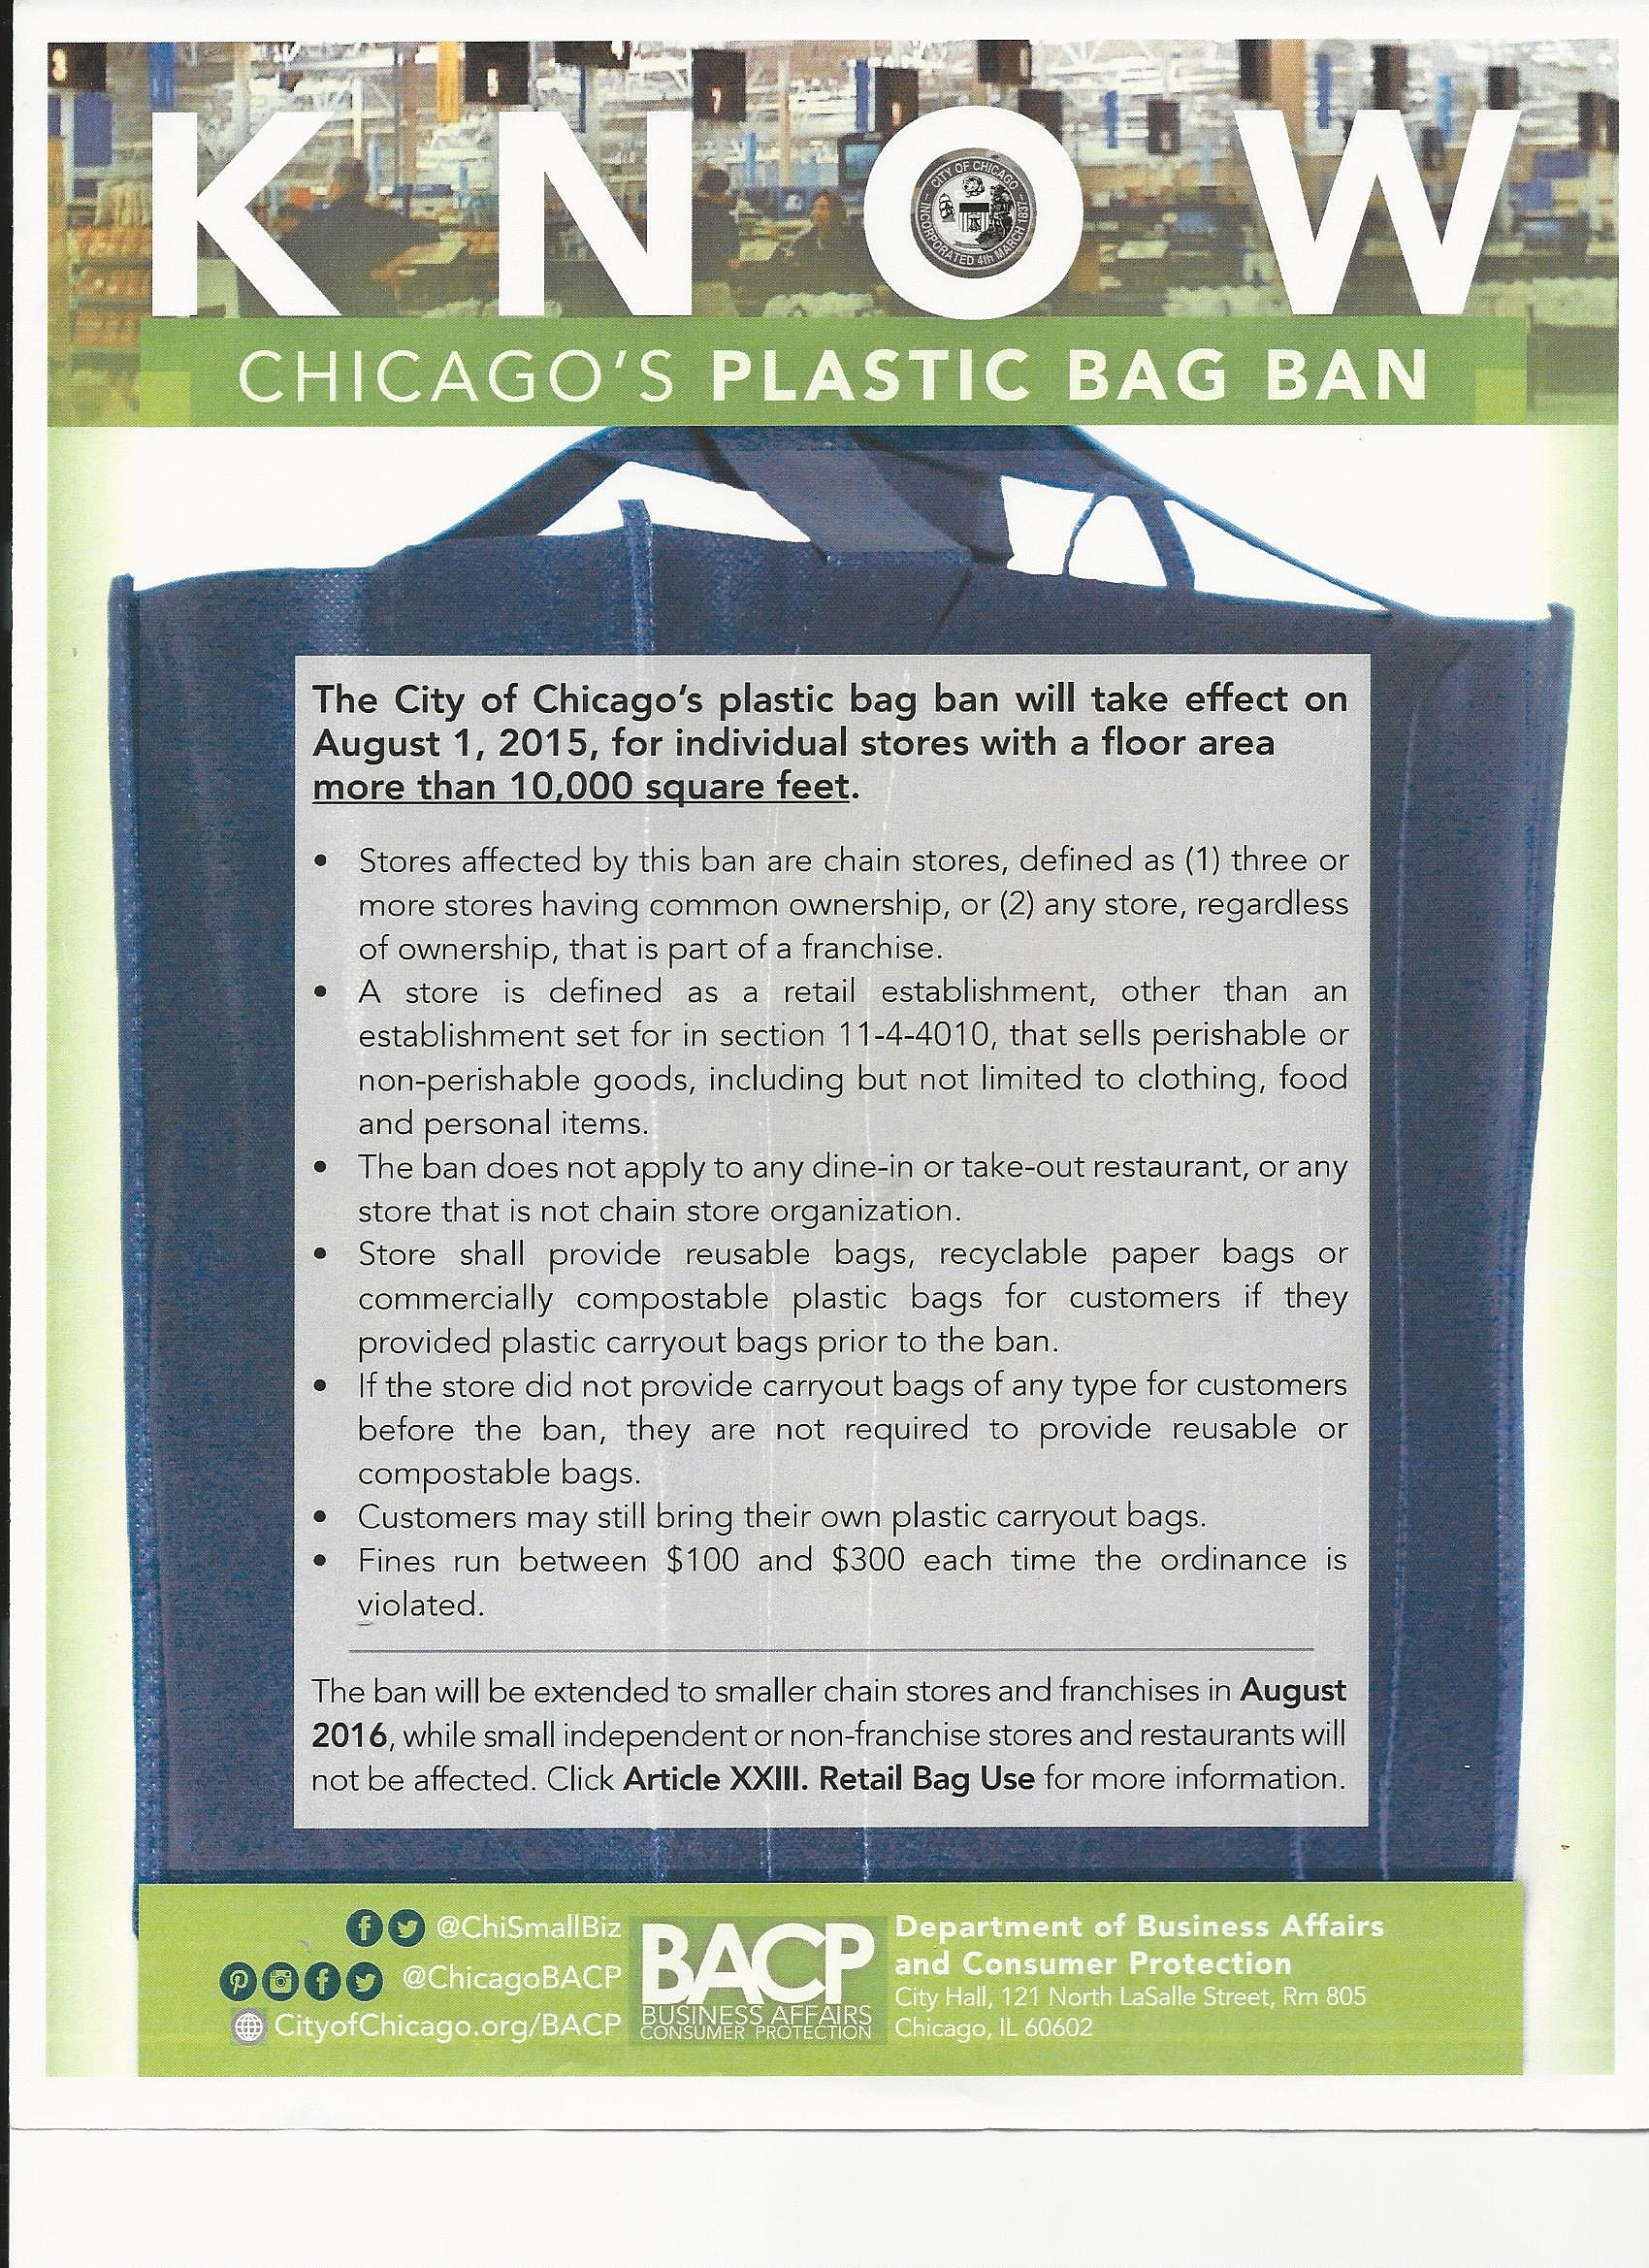 Plastic bag ban chicago - South Loop Chamber Of Commerce Chicago S Plastic Bag Ban Flyer Jpg